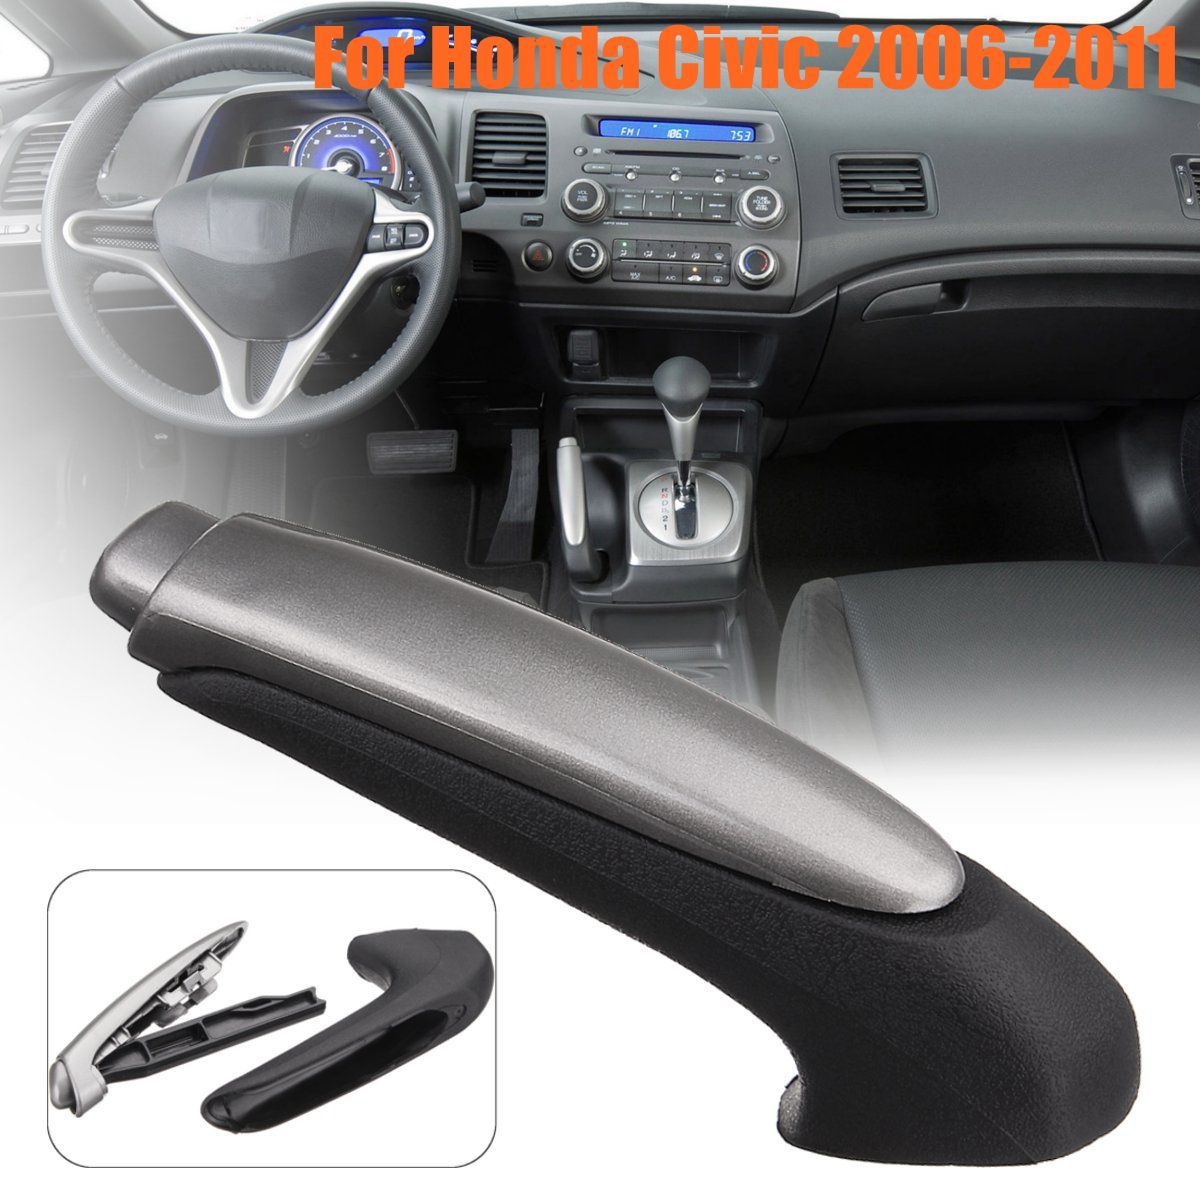 Car Handle Grip Covers Parking Hand Brake Handle Sleeve Protector Interior <font><b>Accessories</b></font> for <font><b>Honda</b></font> for <font><b>Civic</b></font> <font><b>2006</b></font> 2007 2008 -2011 image